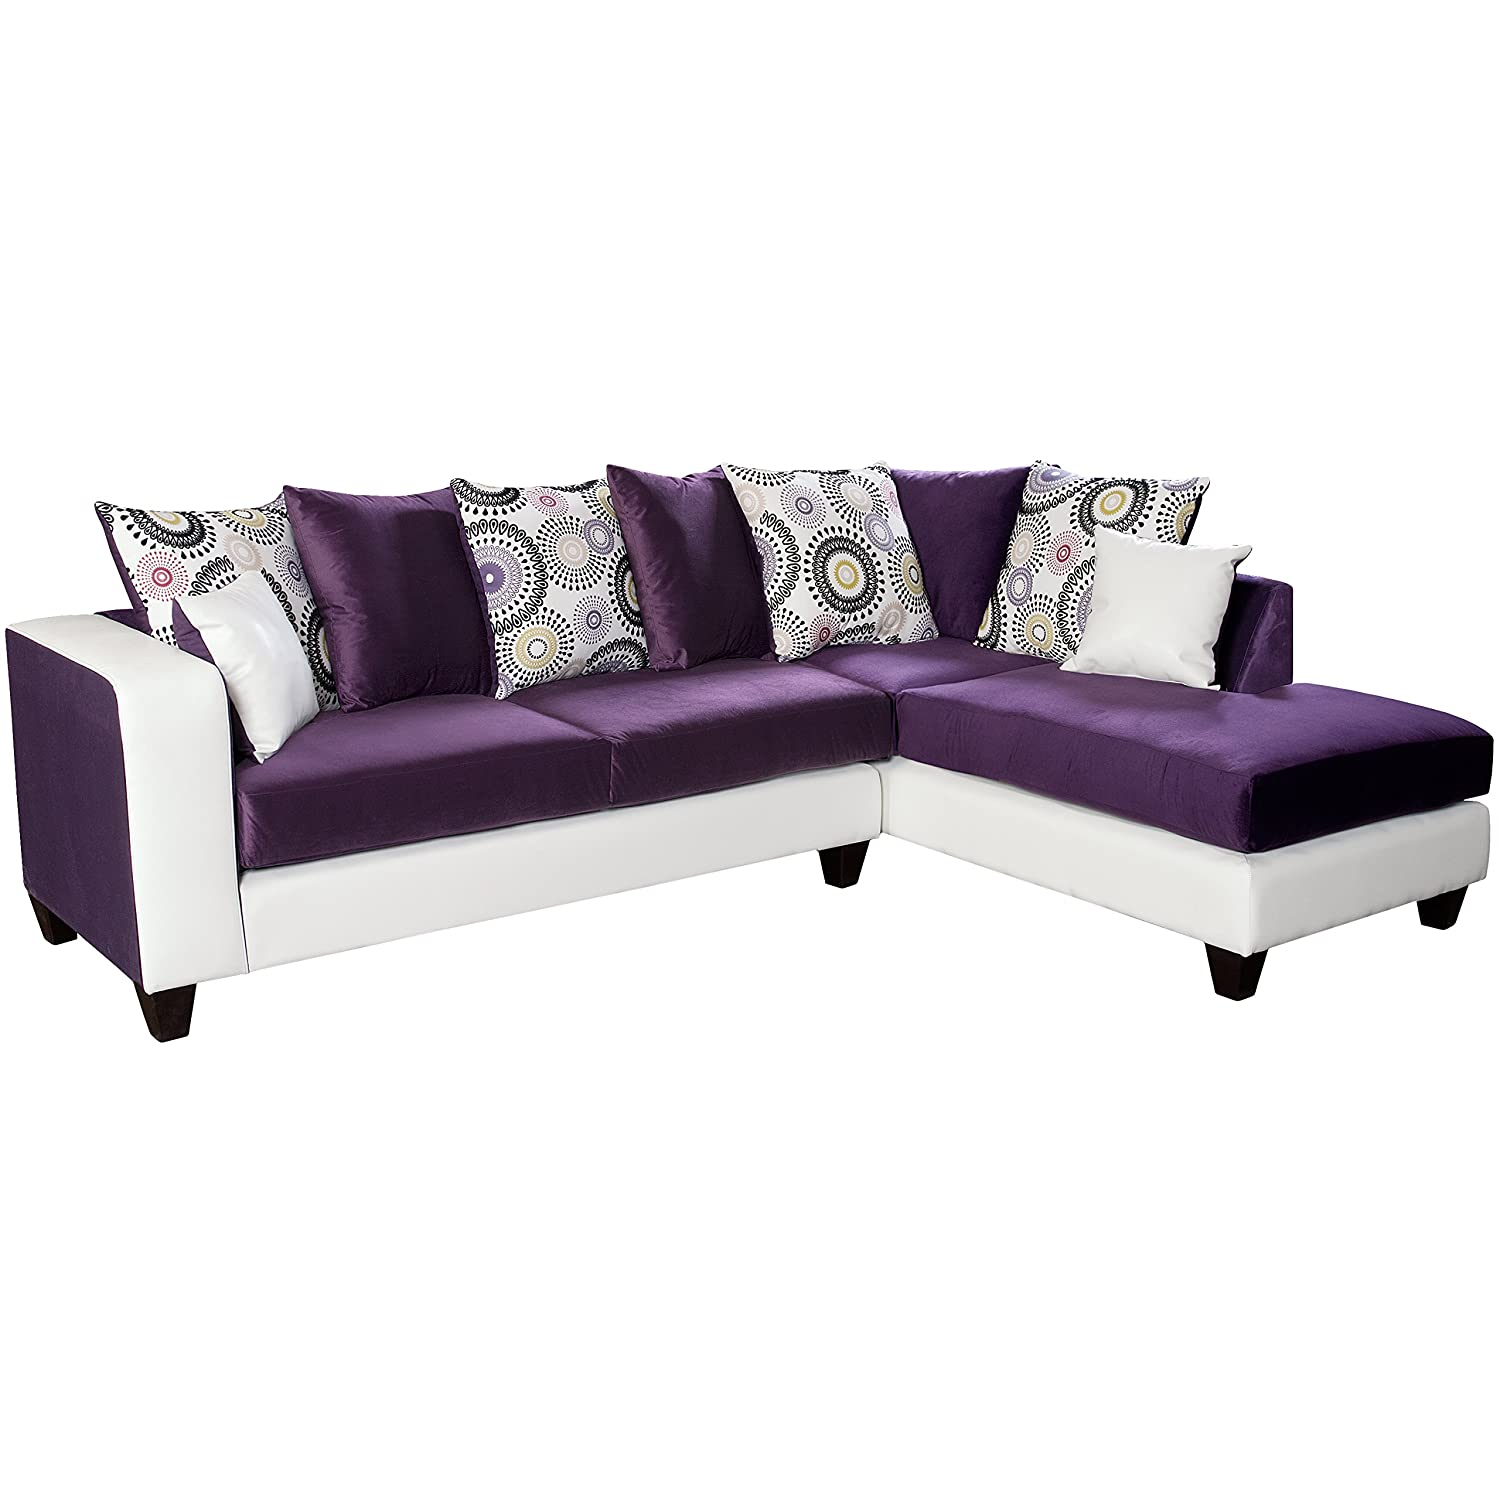 Amazon.com Flash Furniture Riverstone Implosion Purple Velvet Sectional Kitchen u0026 Dining  sc 1 st  Amazon.com : velvet sectional - Sectionals, Sofas & Couches